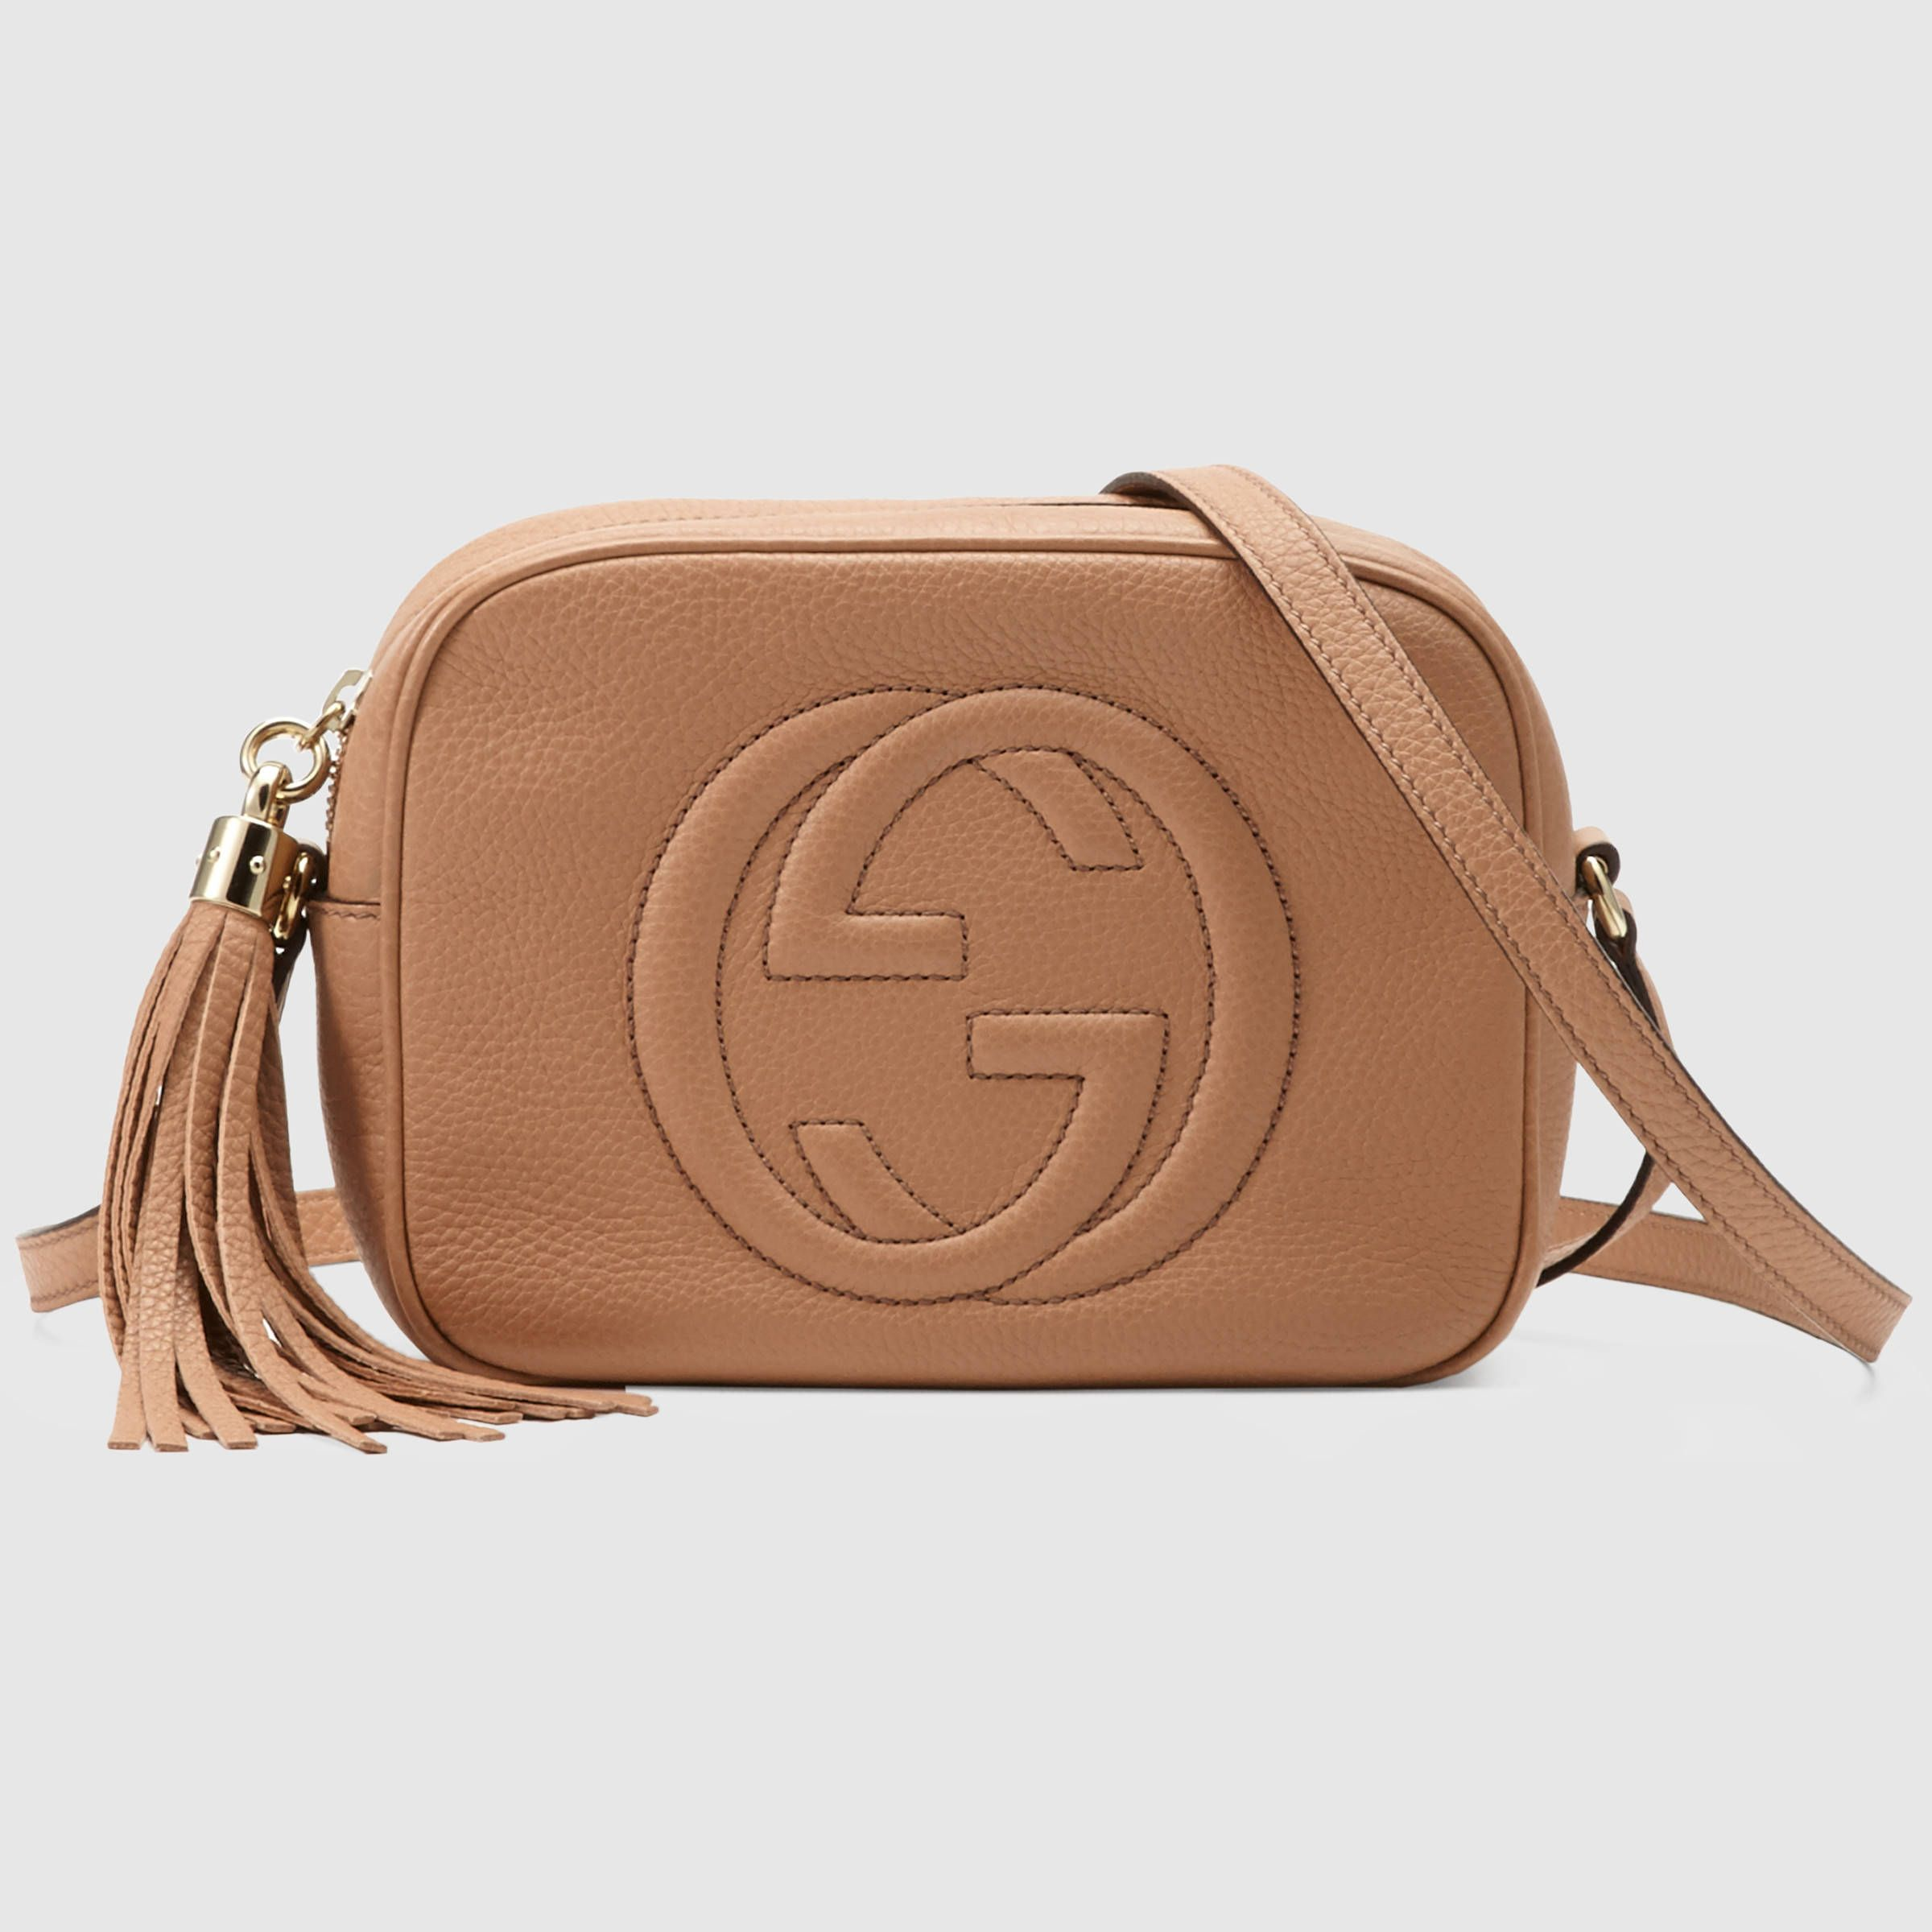 fc1b5ebbf89 Gucci Women - Soho leather disco bag - rosè beige leather  980  308364A7M0G2754